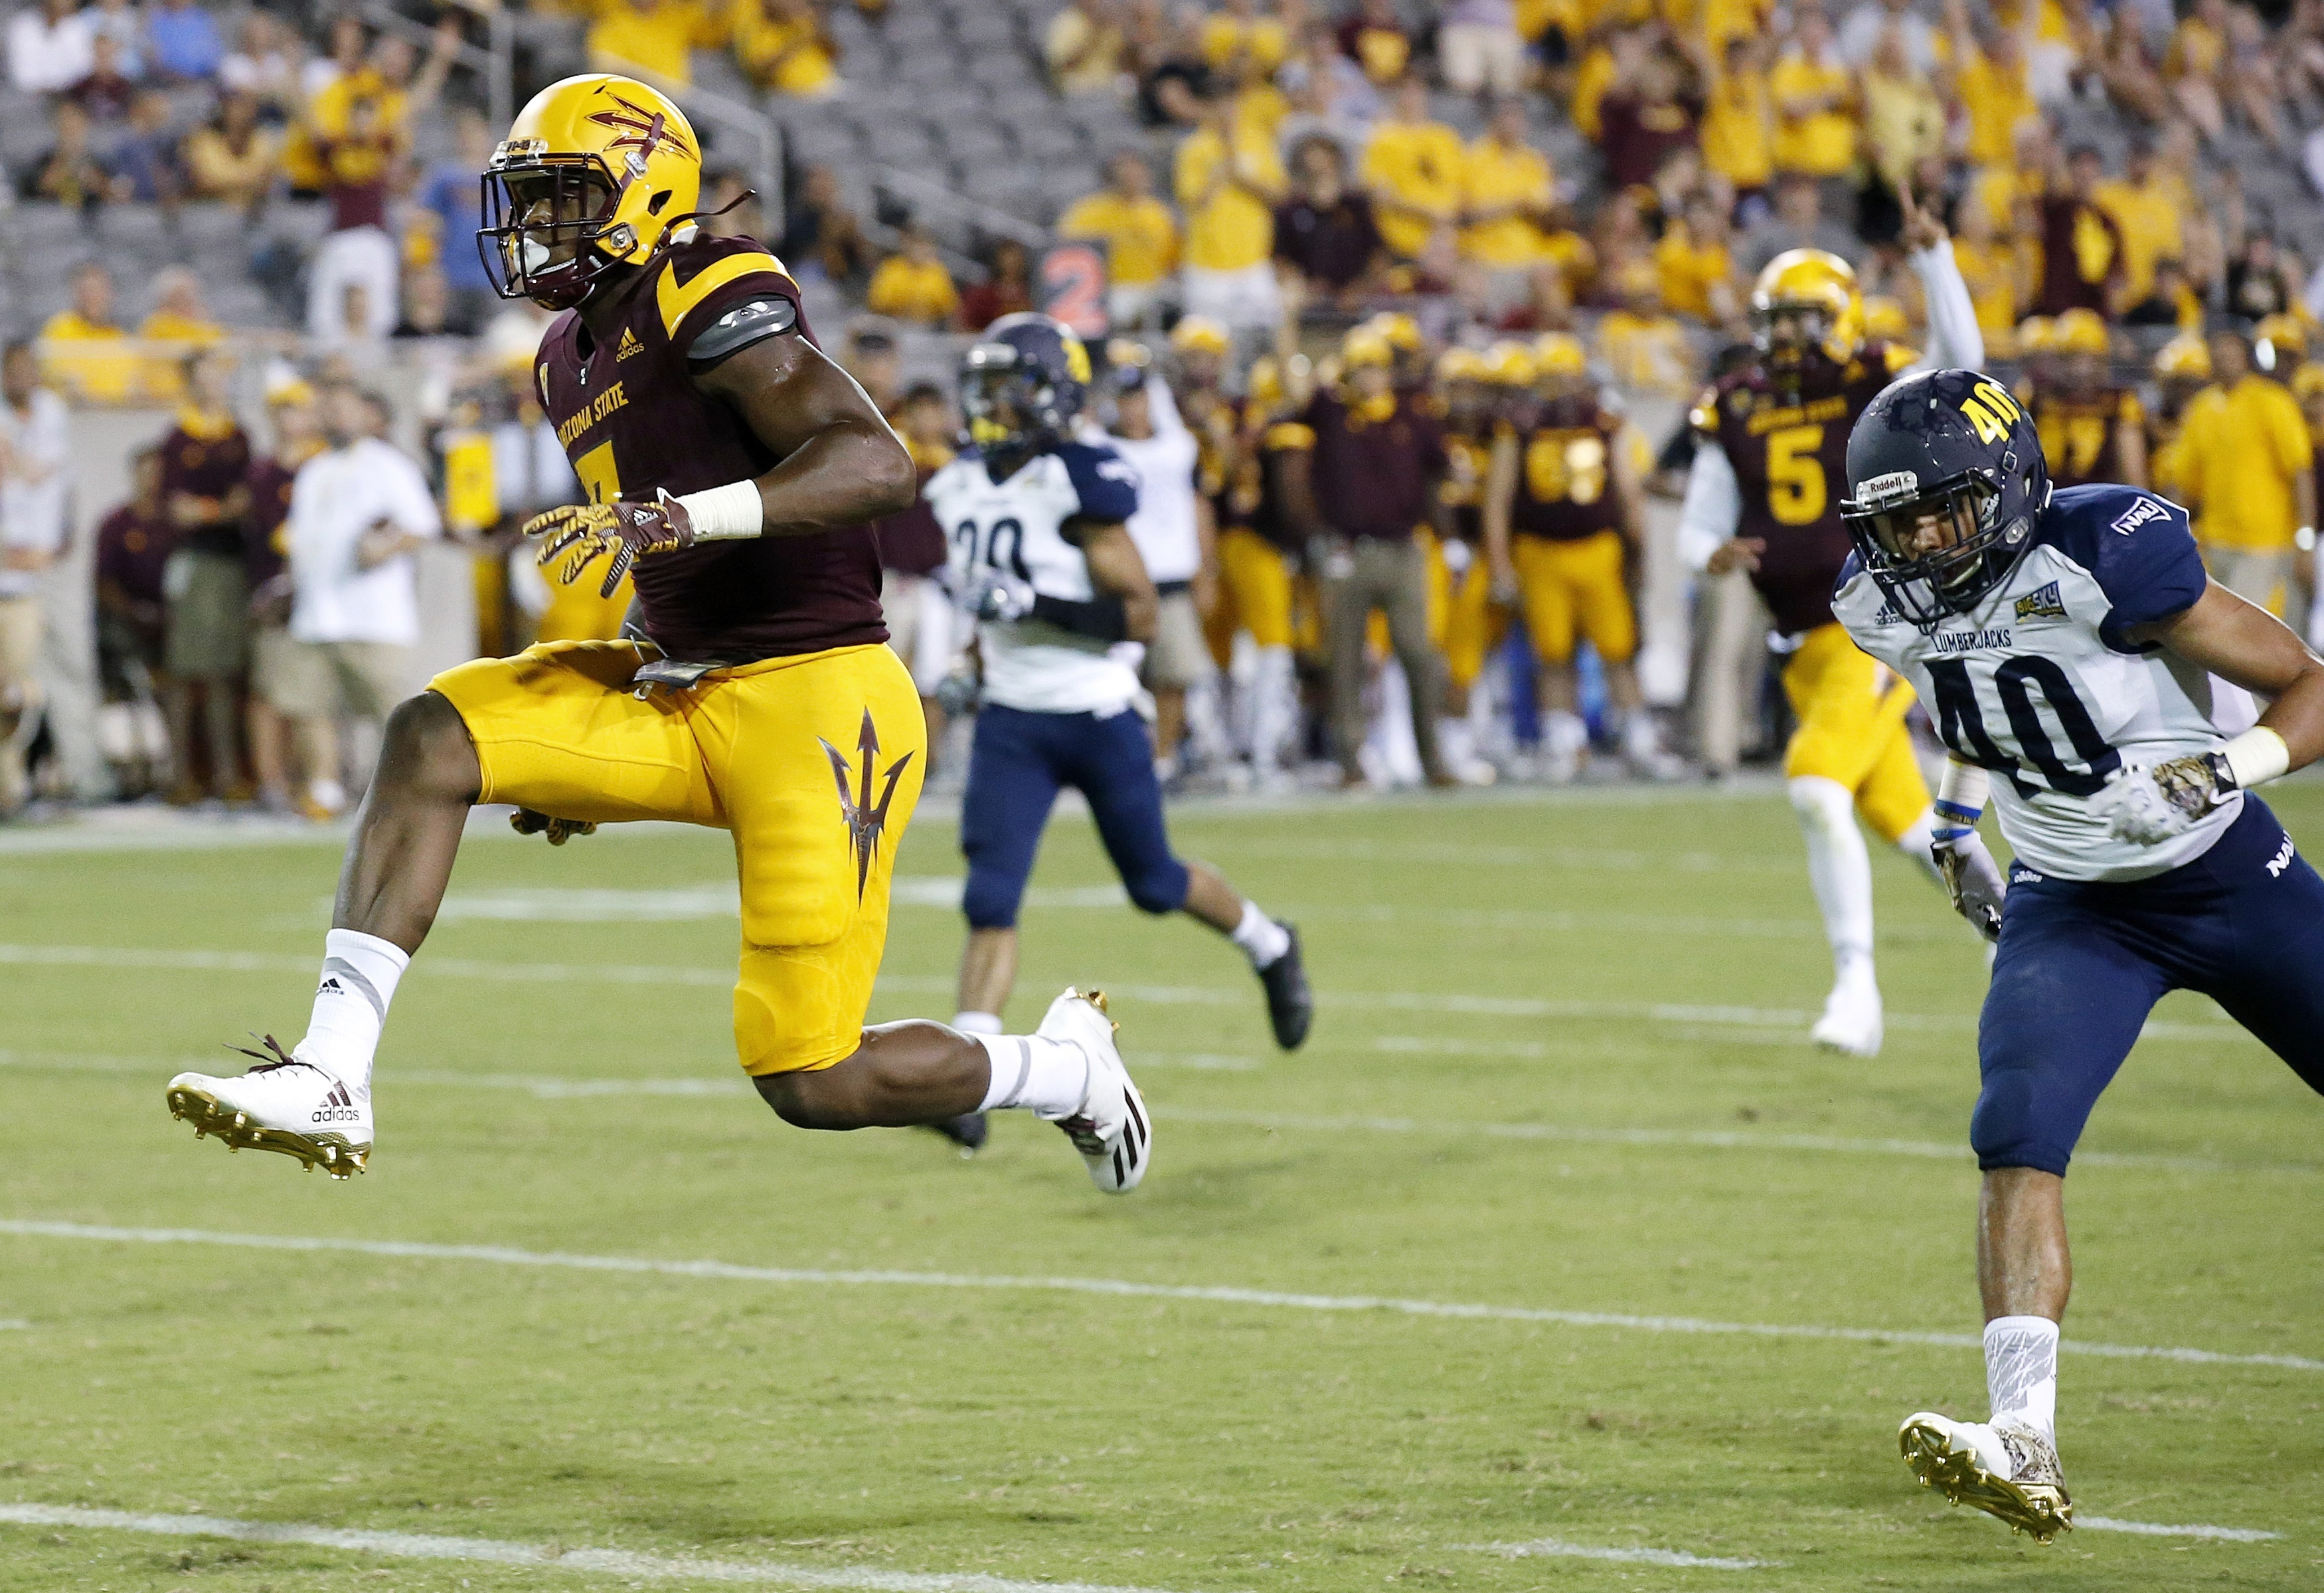 Arizona State's Kalen Ballage, left, jumps into the end zone for a touchdown as he gets past Northern Arizona's Keith Graham (40) and Maurice Davison, second from left, during the second half of an NCAA college football game Saturday, Sept. 3, 2016, in Te